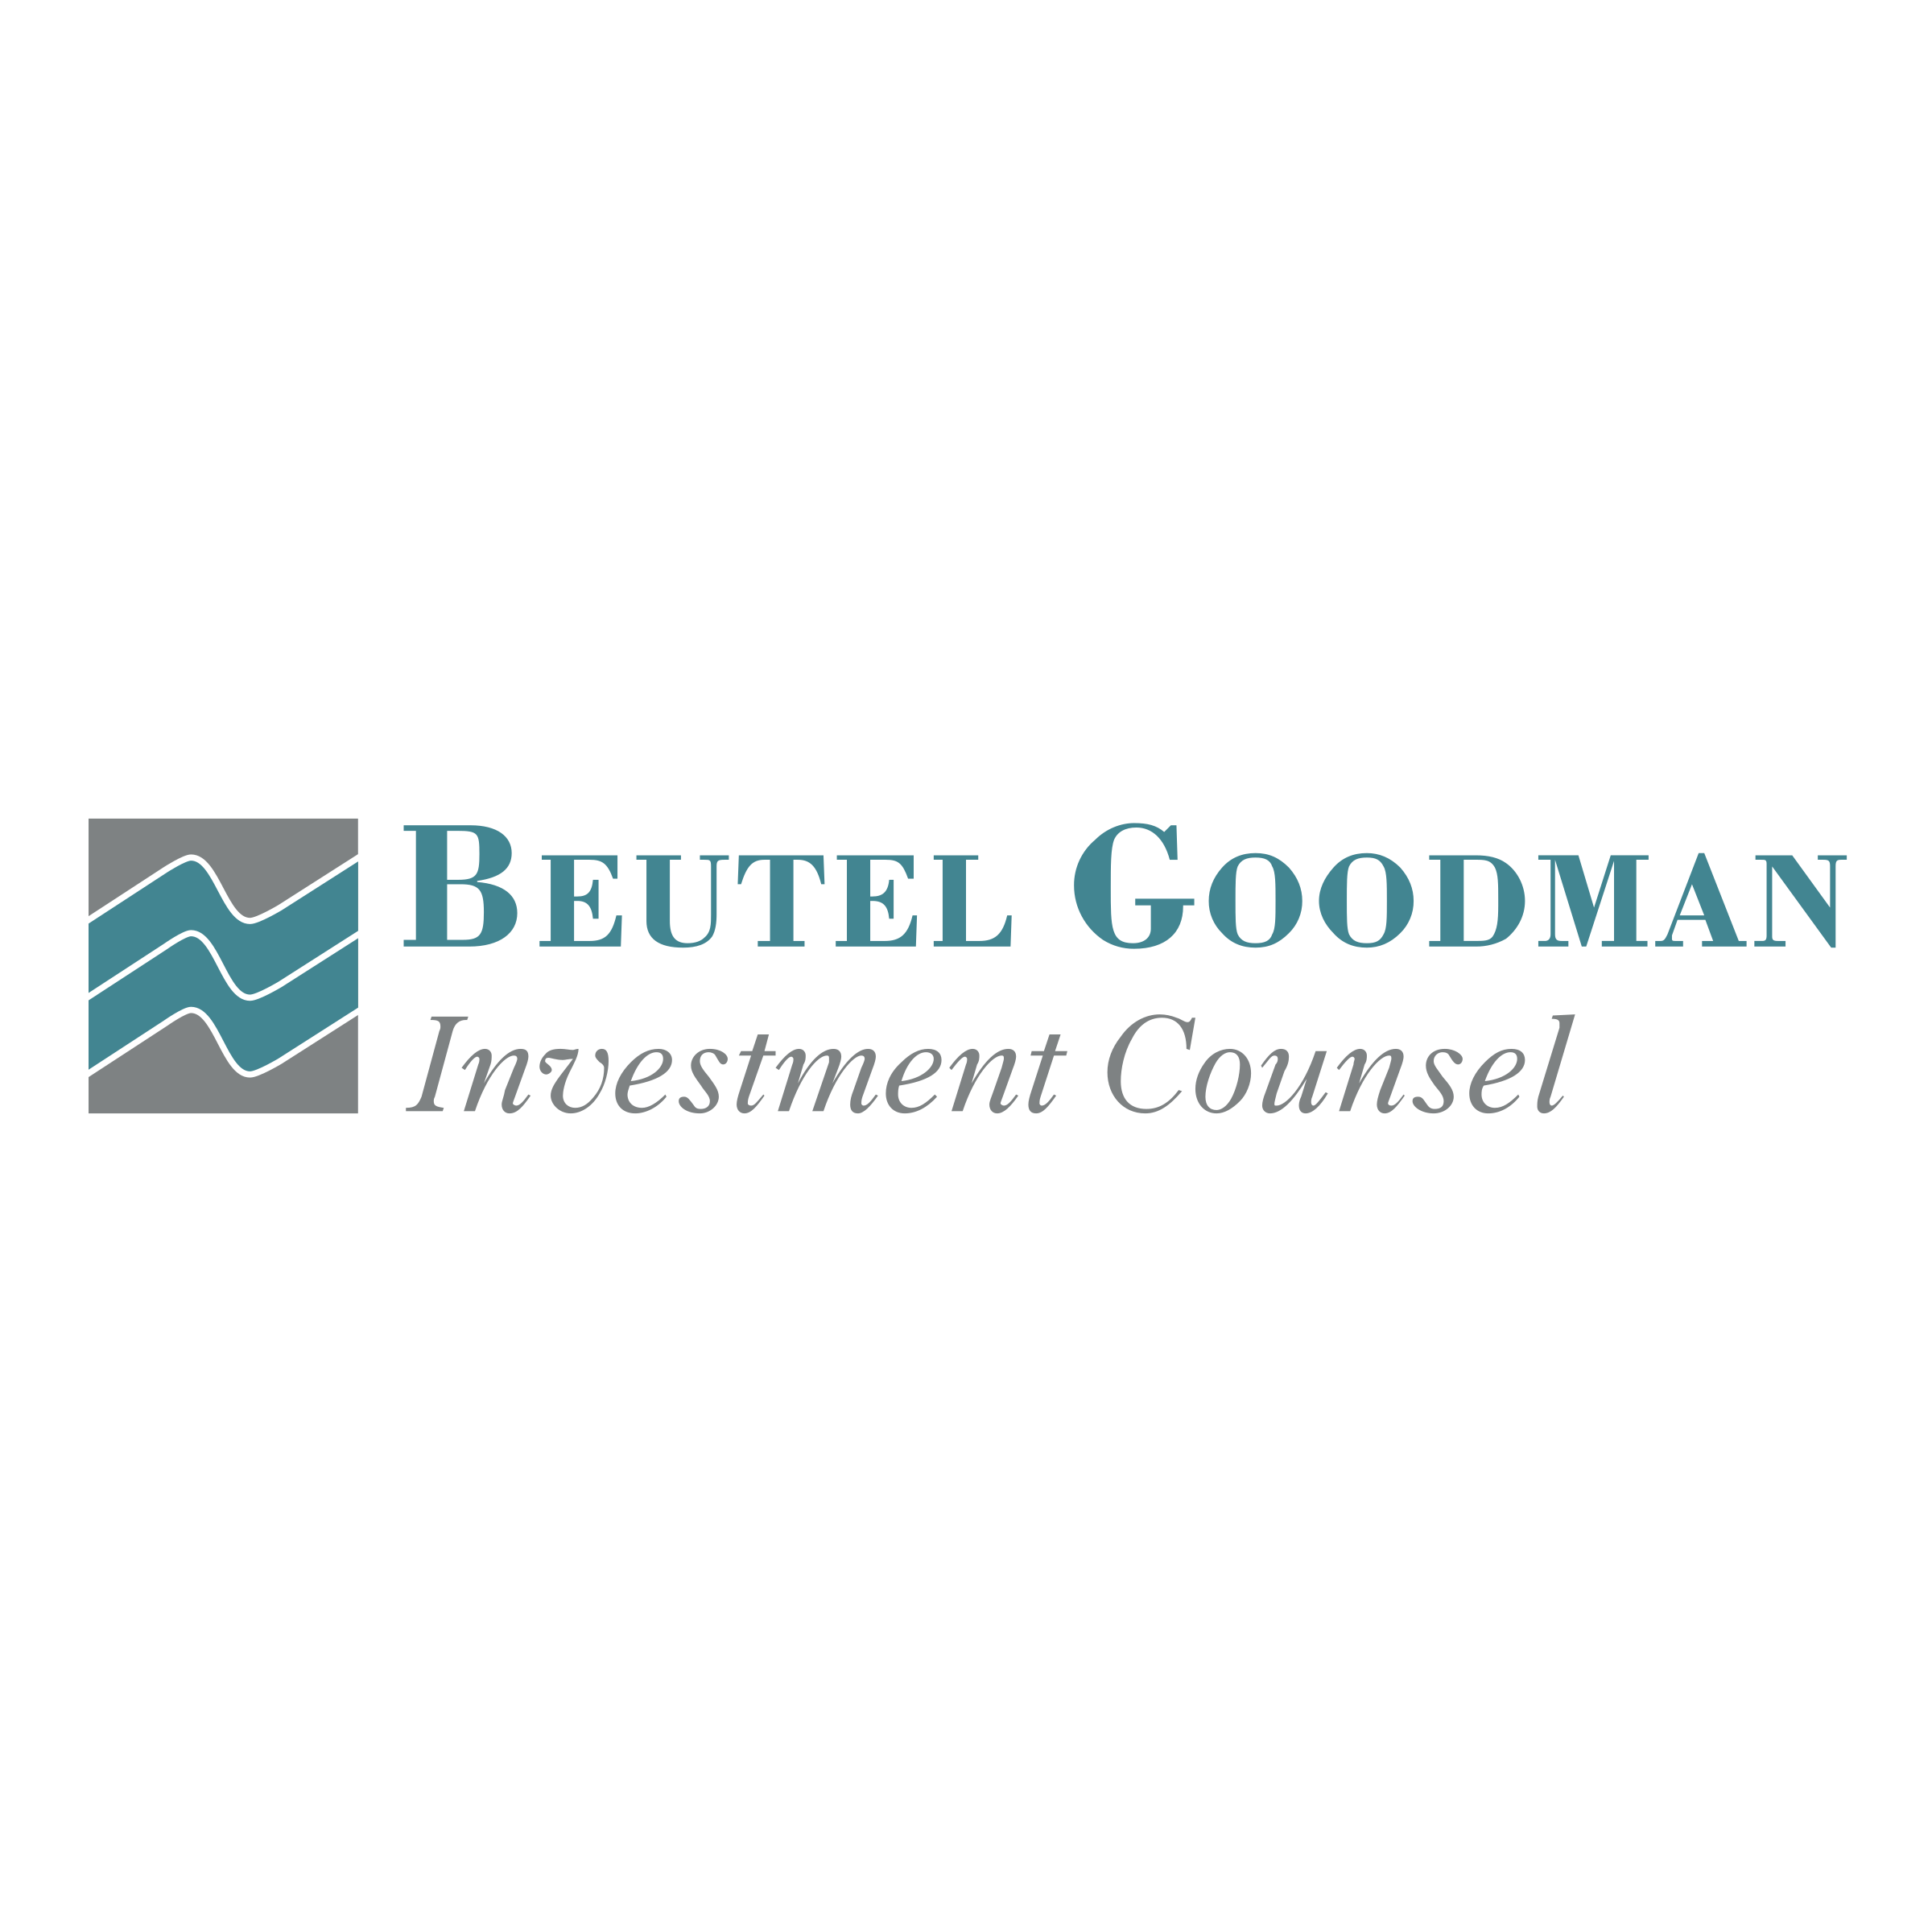 Beutel Goodman 01 Logo PNG Transparent